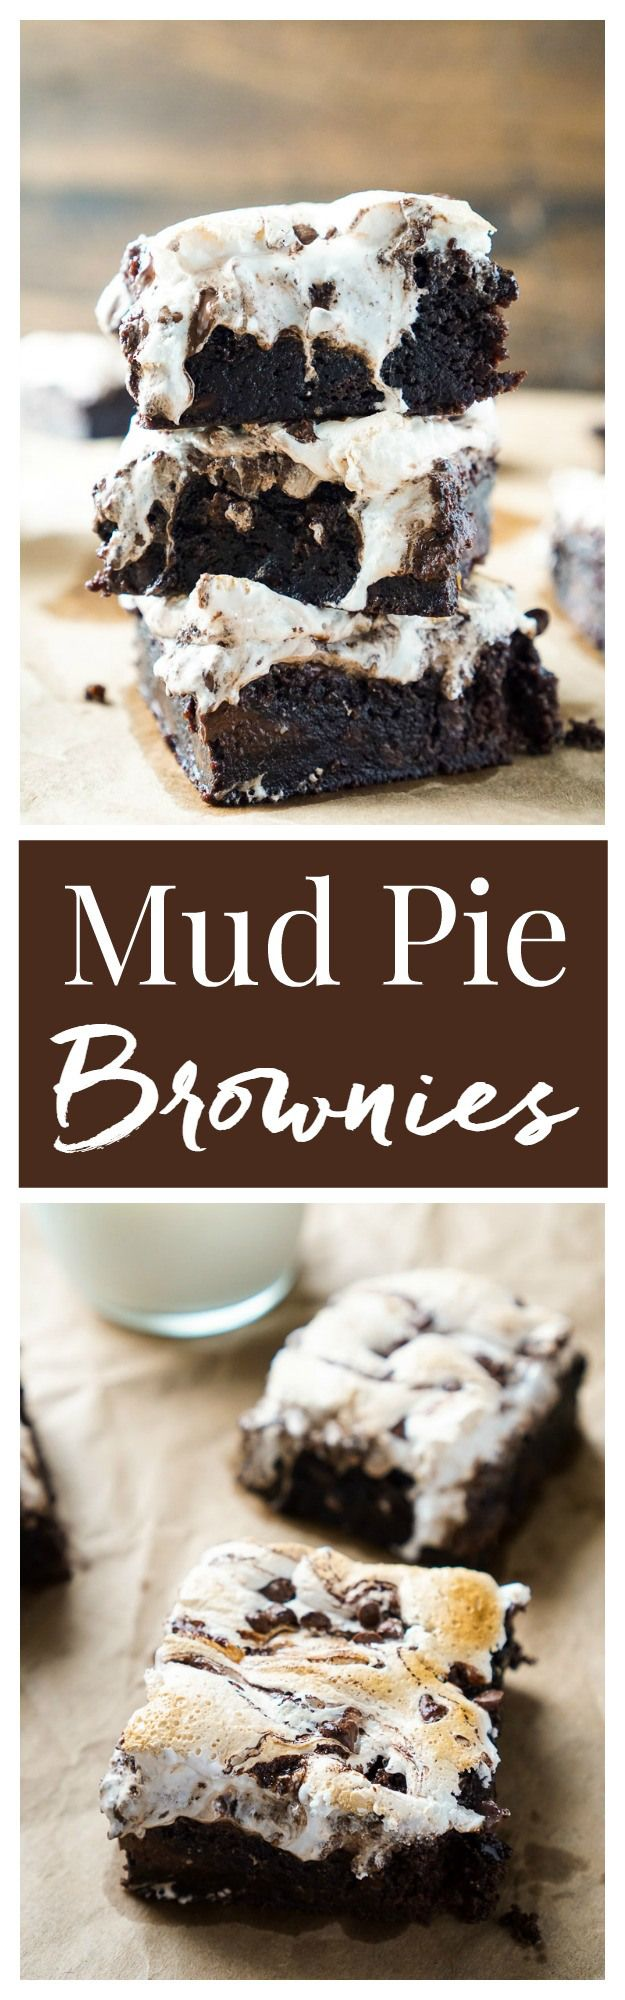 These Mud Pie Brownies are super easy to make thanks to a little cheat, but pack in the rich chocolate flavor with toasted marshmallow fluff!